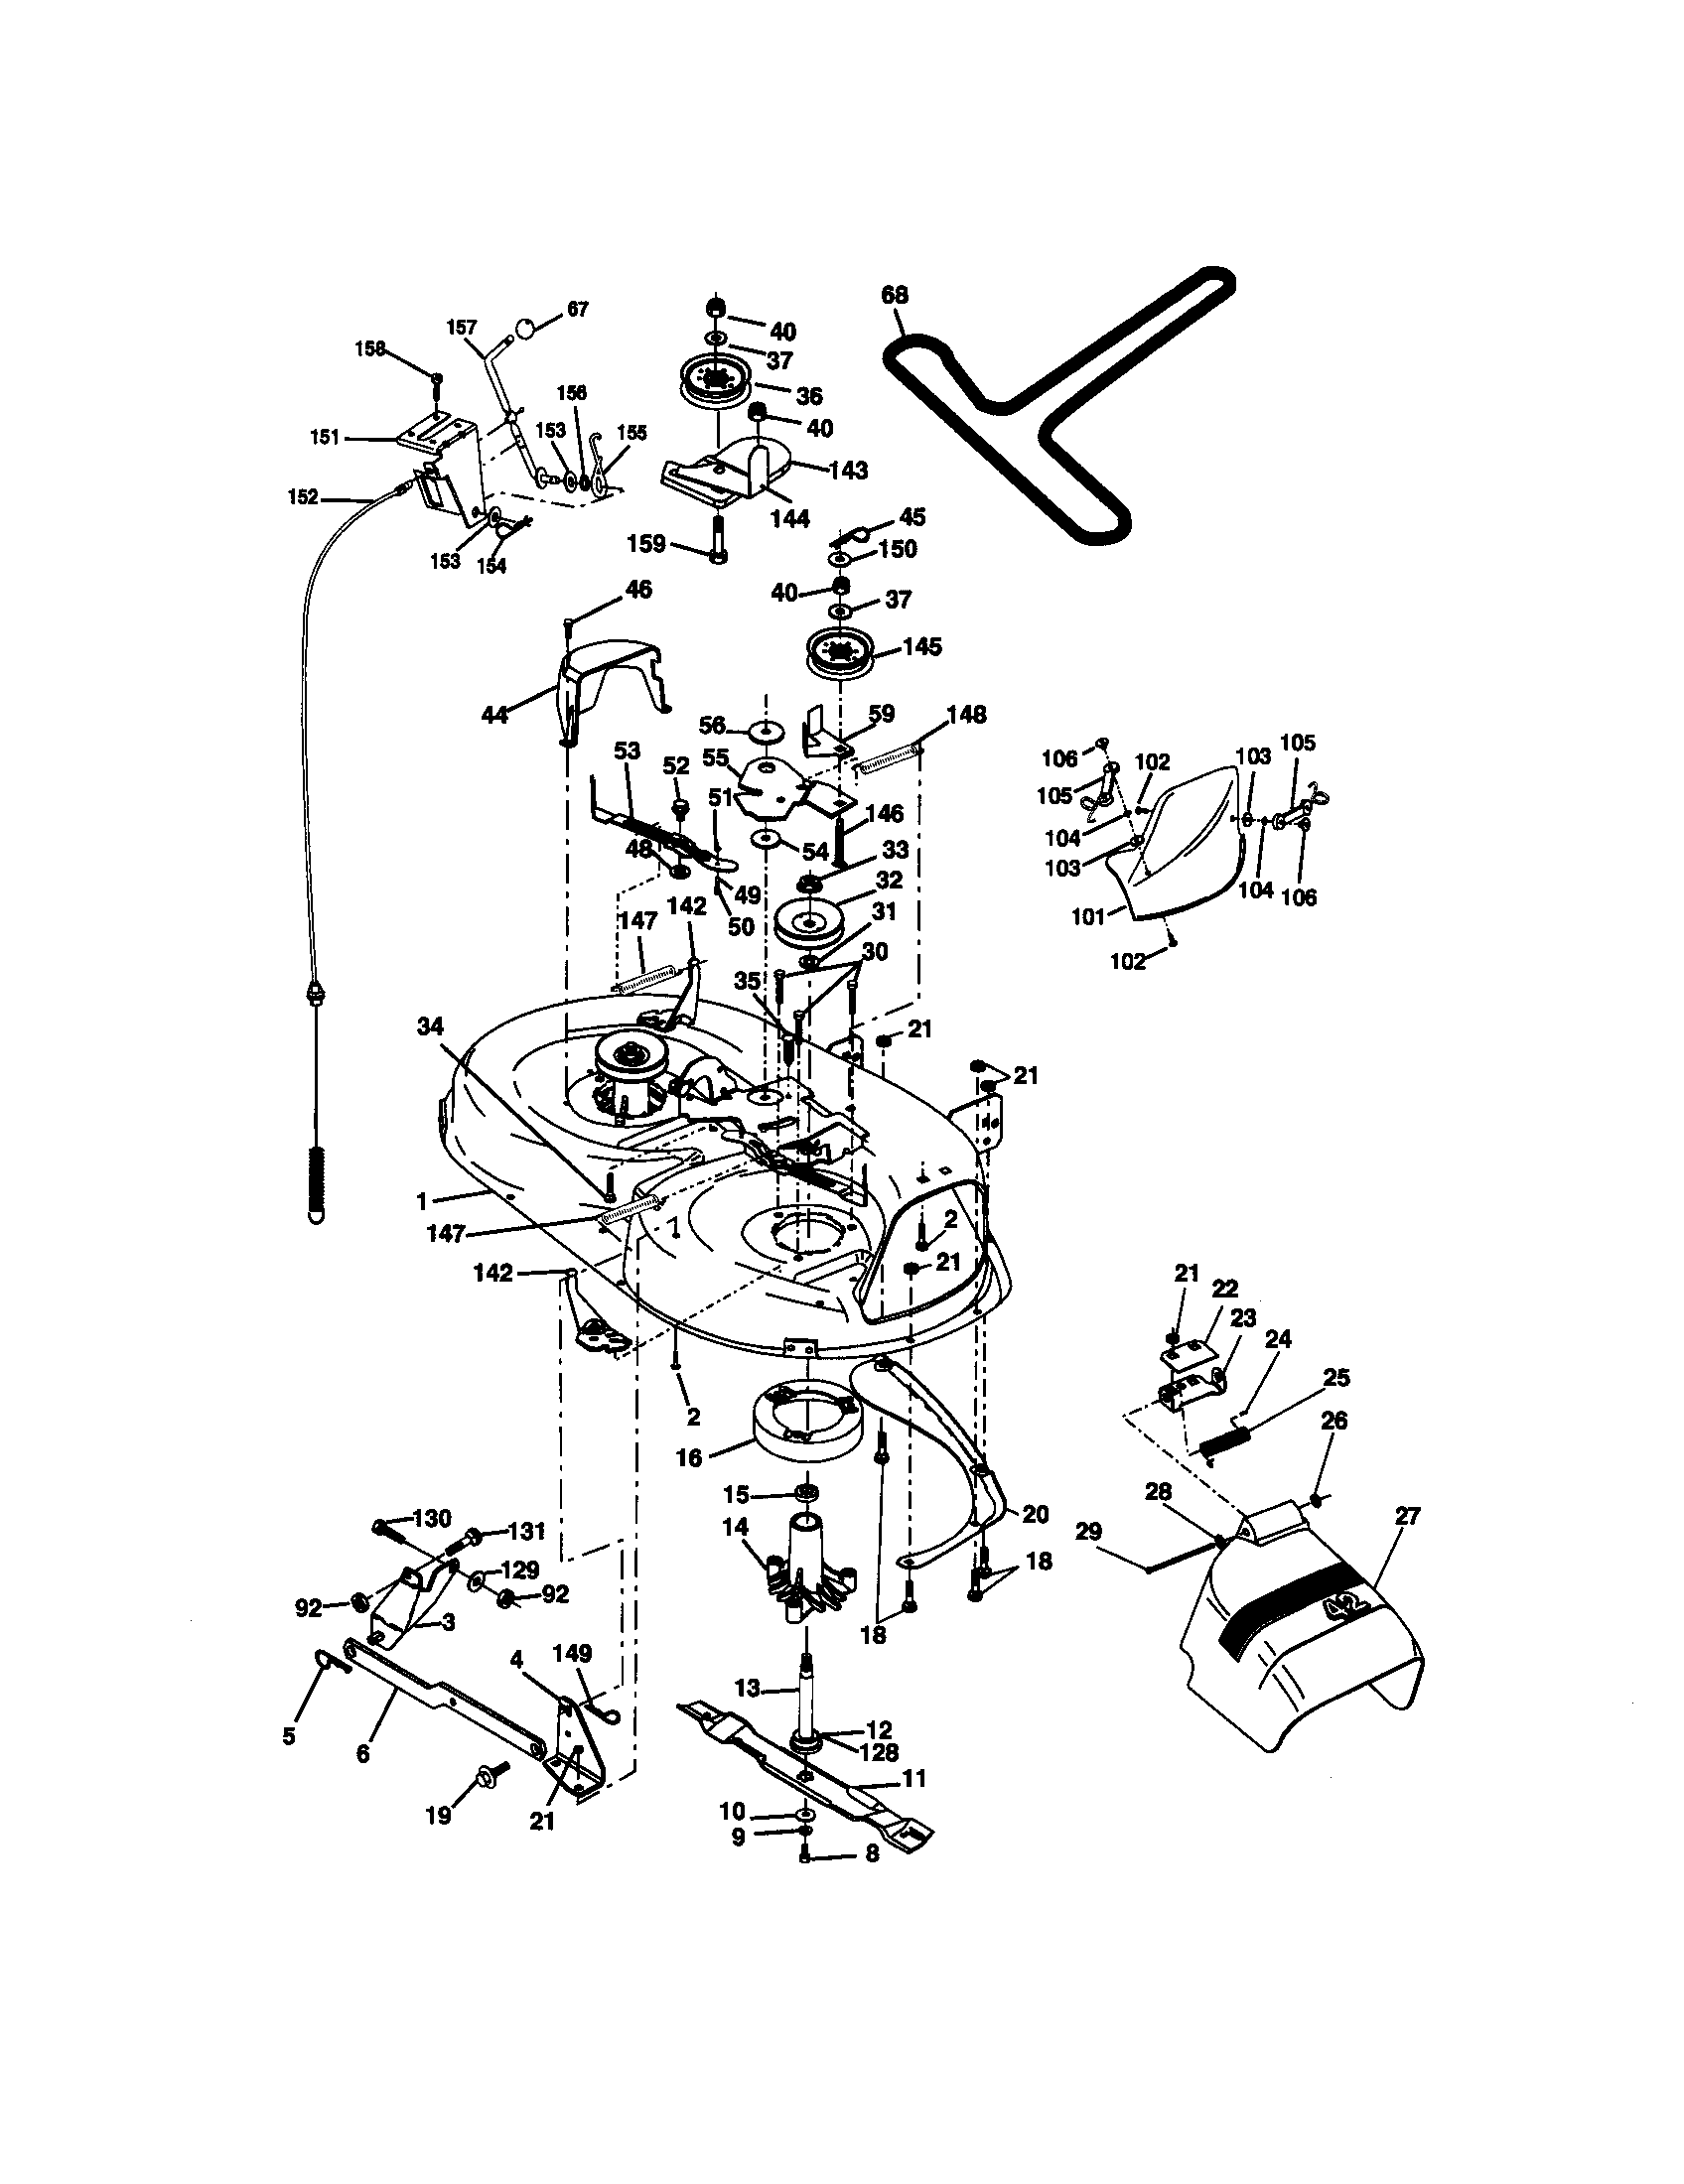 Schematic diagram diagram and parts list for craftsman riding mower craftsman model 917270671 lawn tractor genuine parts rh searspartsdirect at